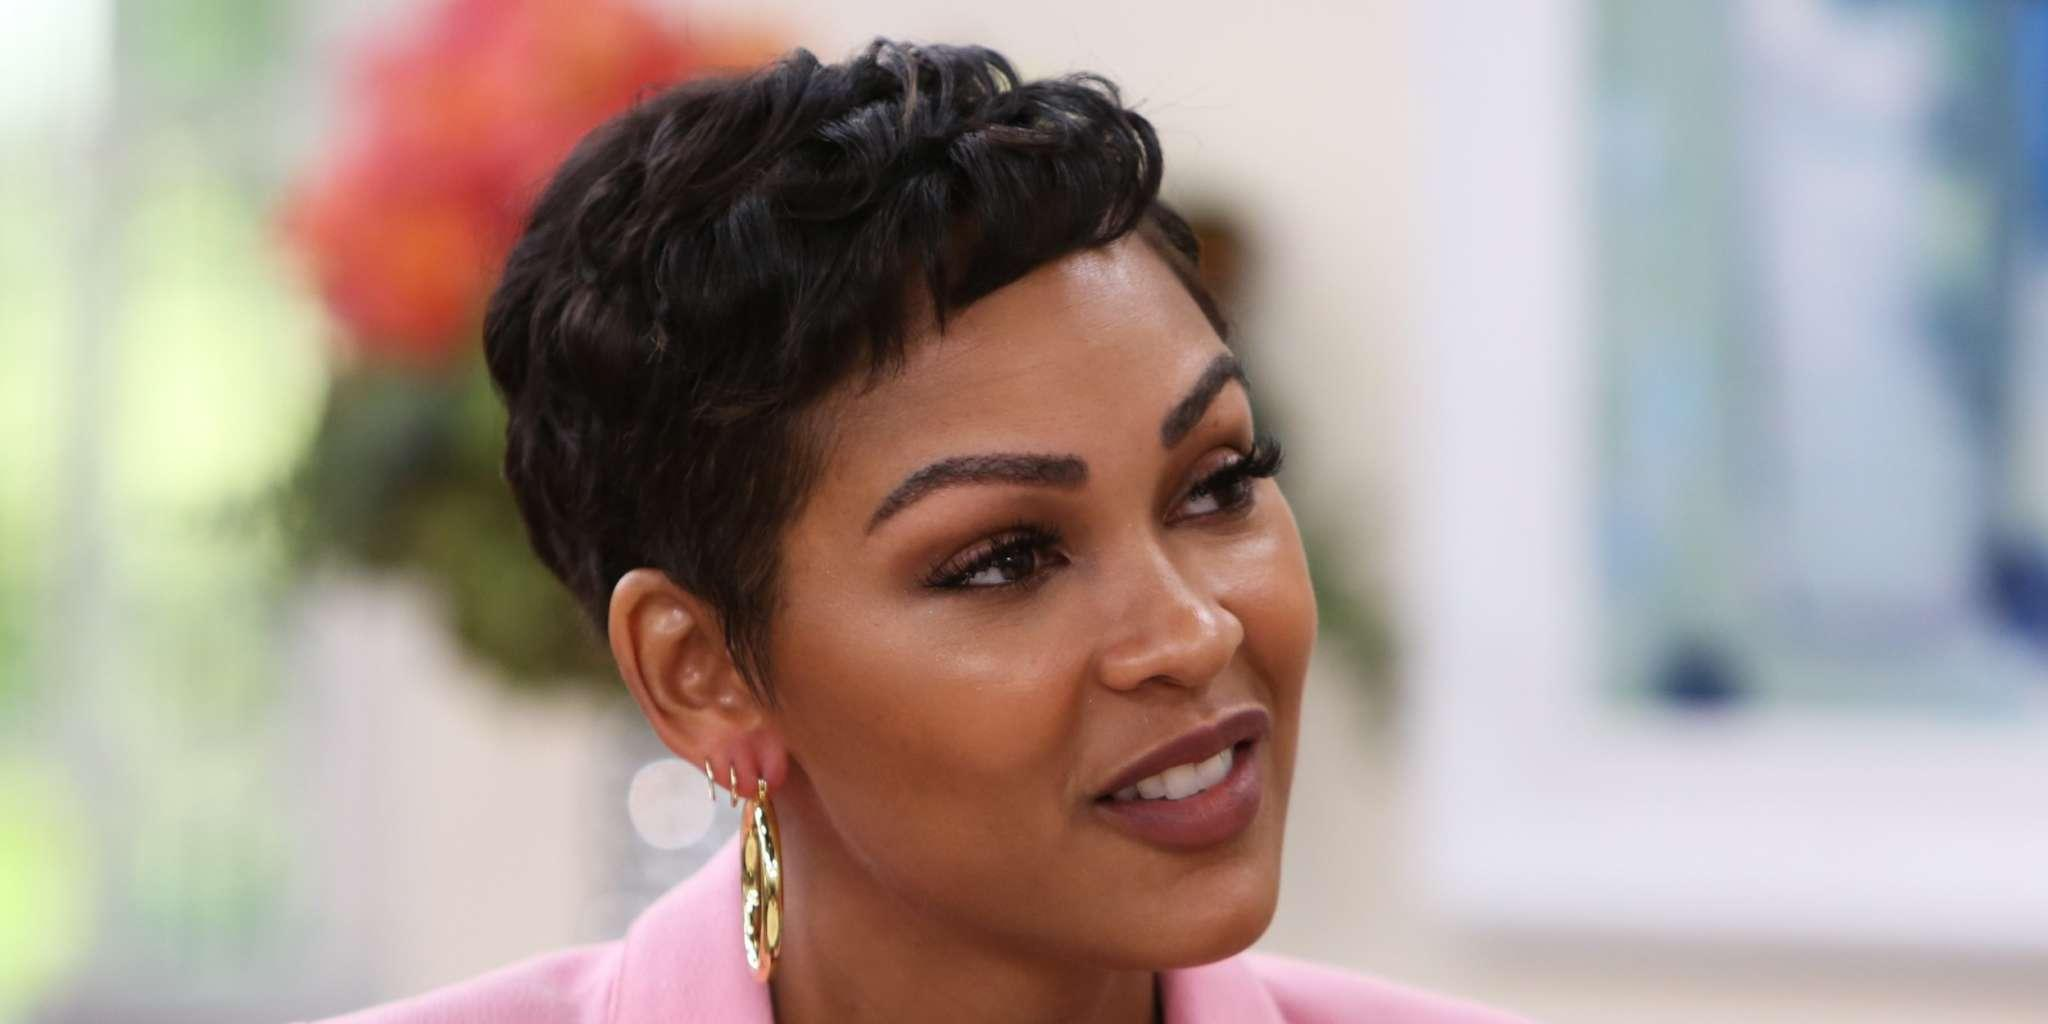 Meagan Good Shocks Fans In New Photos Where She Appears Much Lighter -- Did The Actress Bleach Her Skin?